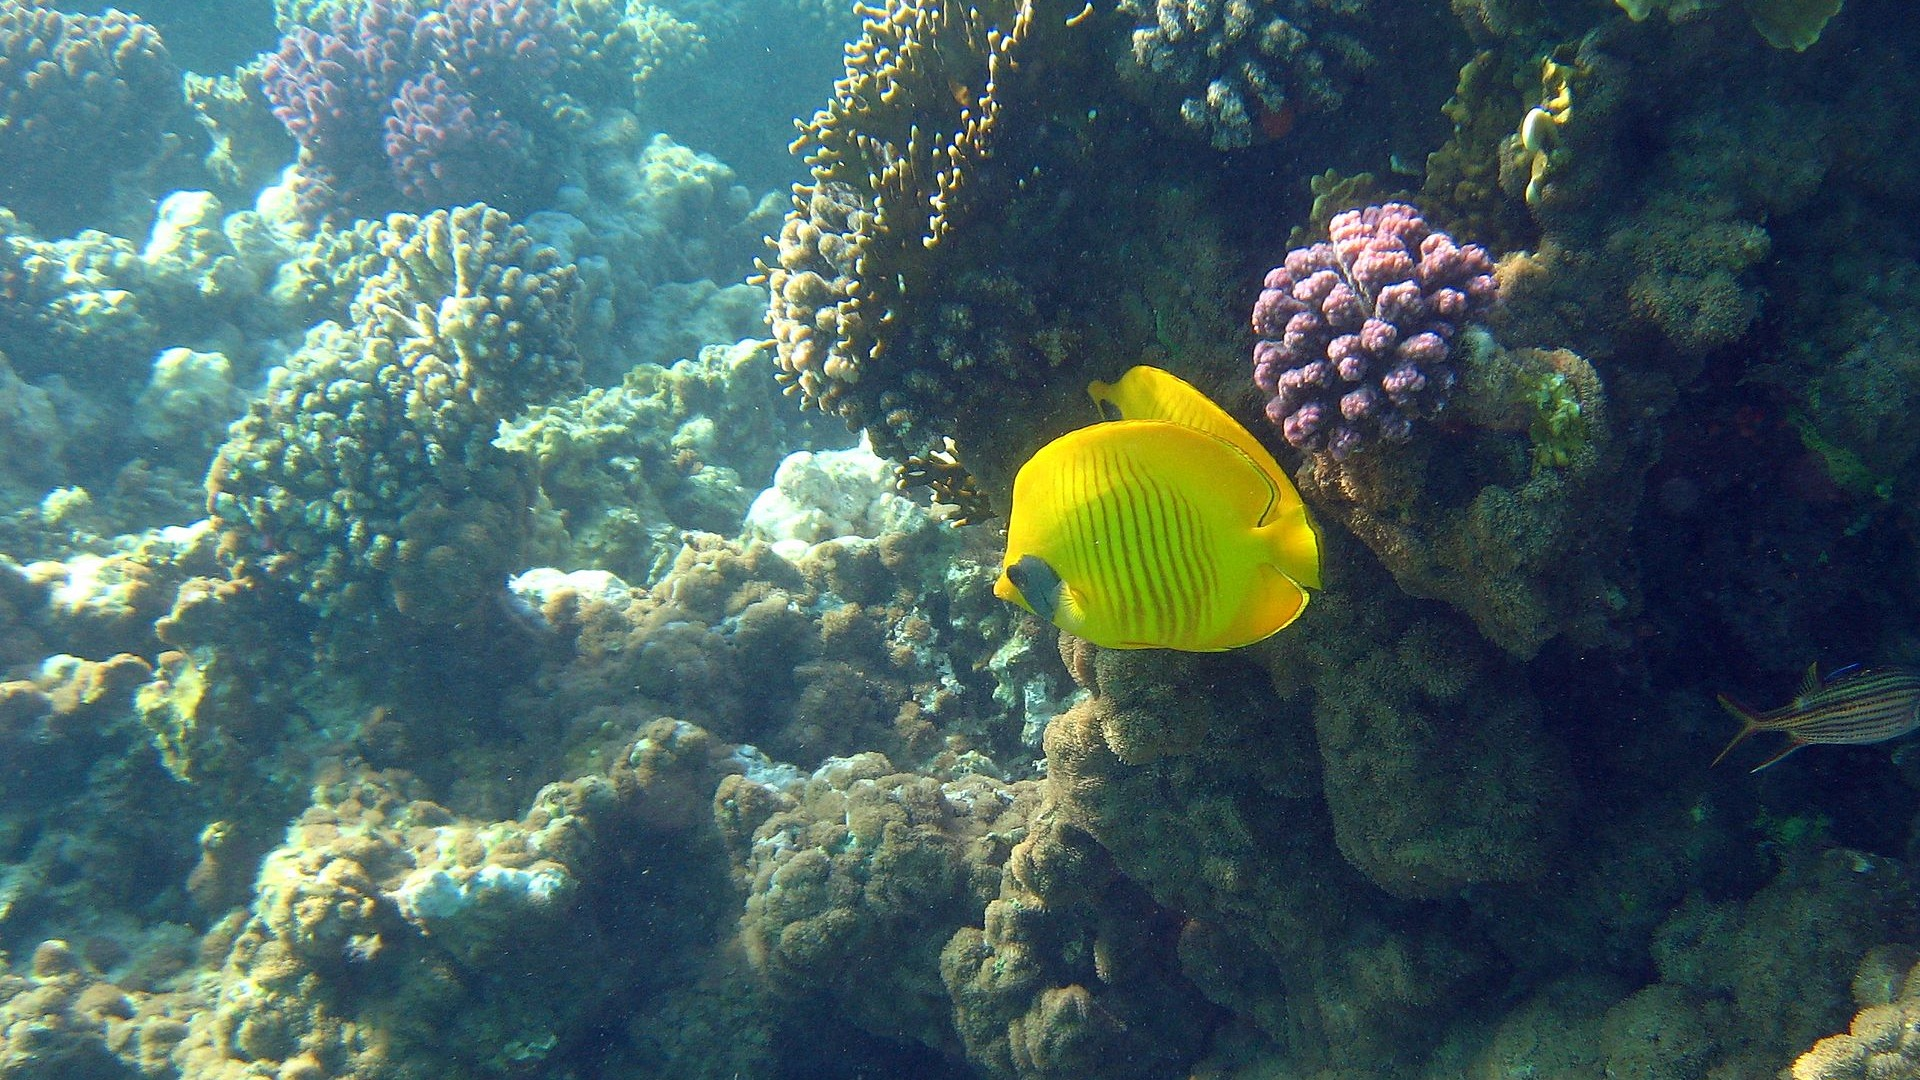 Fun underwater world 4 25 1920x1080 description fun underwater world